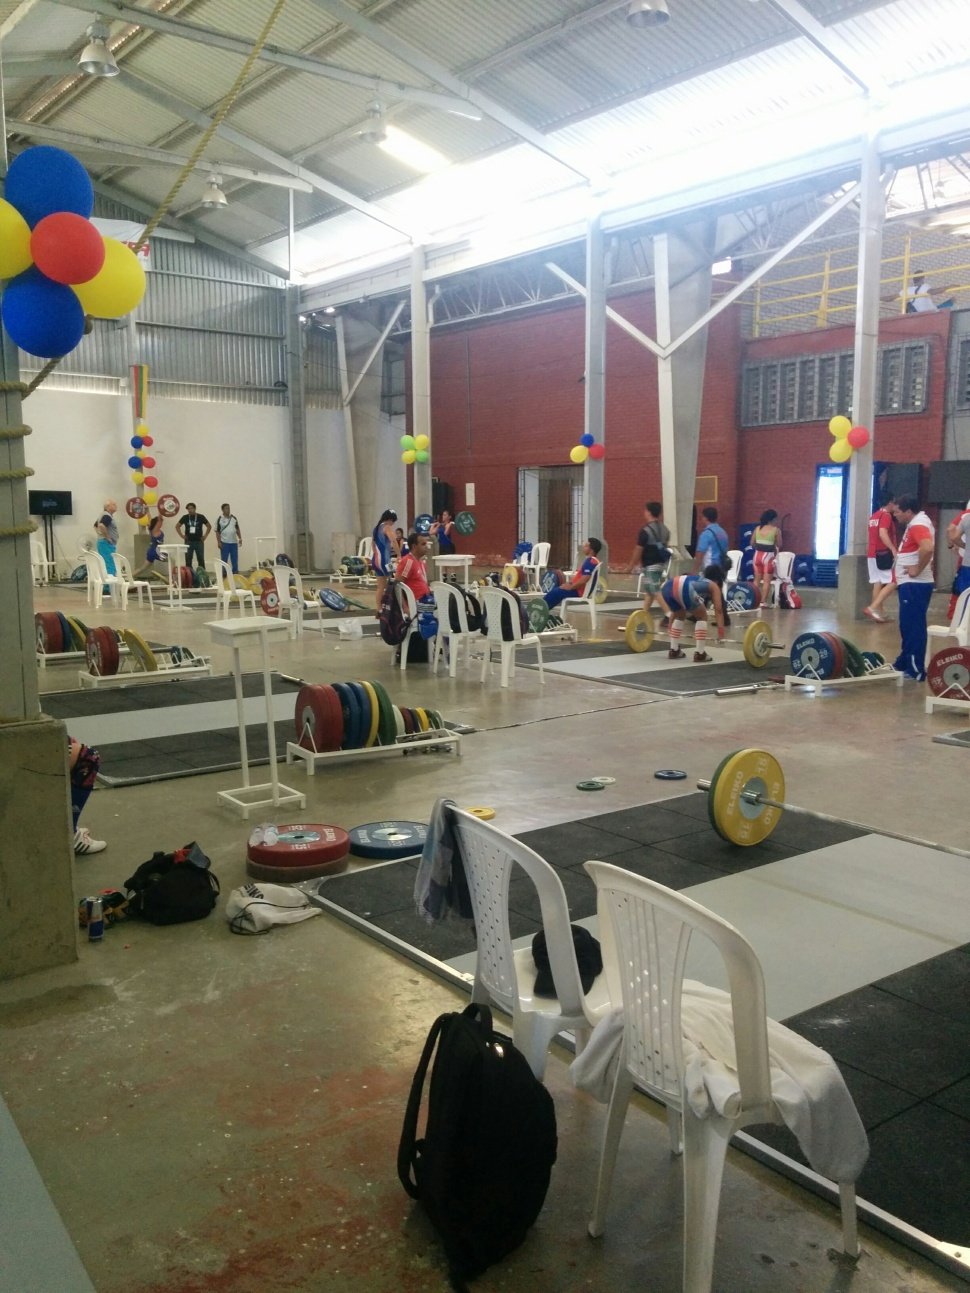 Training hall